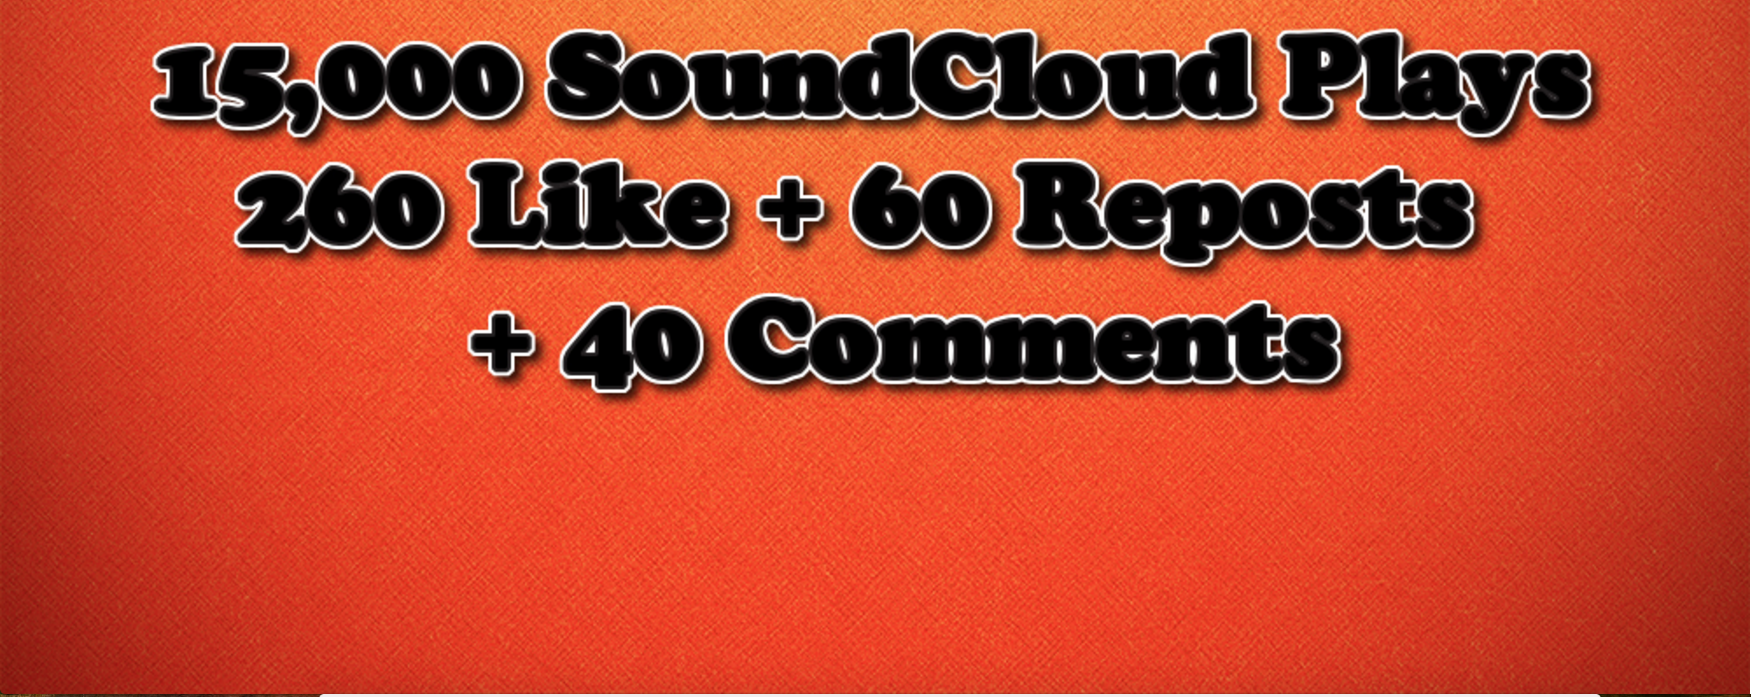 15,000 Plays + 260 SoundCloud Like + 60 Reposts + 40 Comments